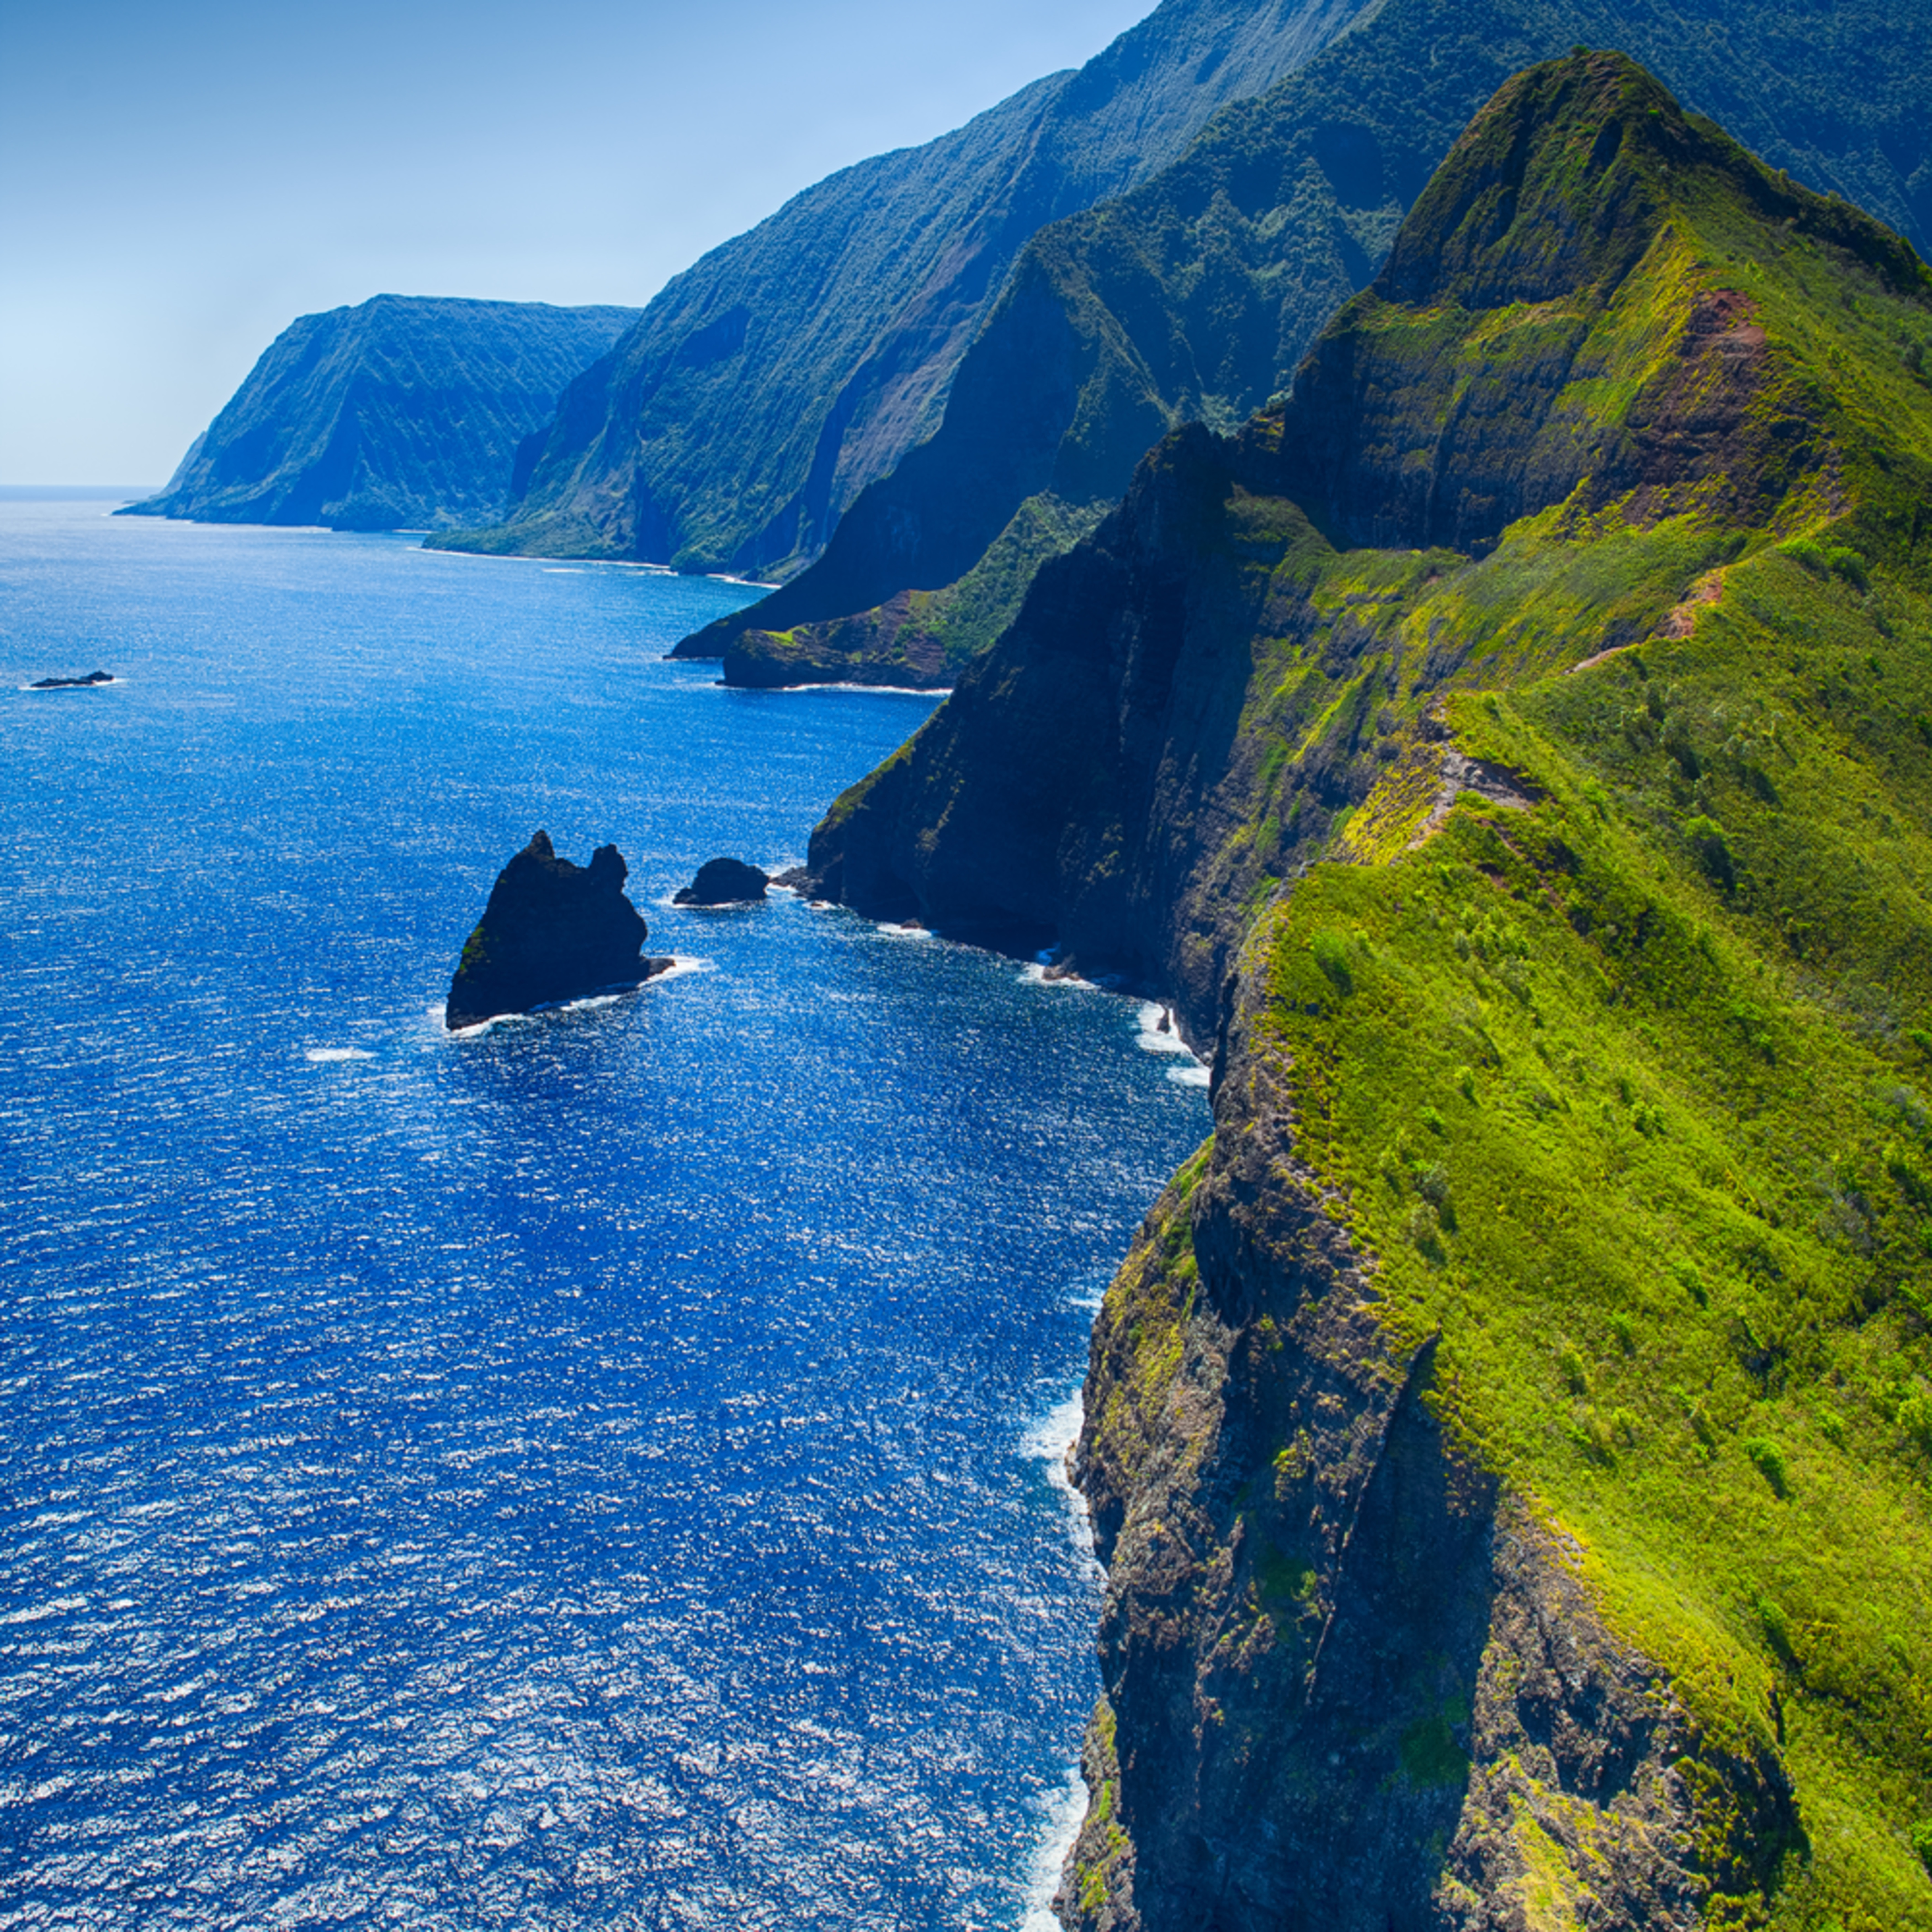 Molokai sea cliffs ut8ti1